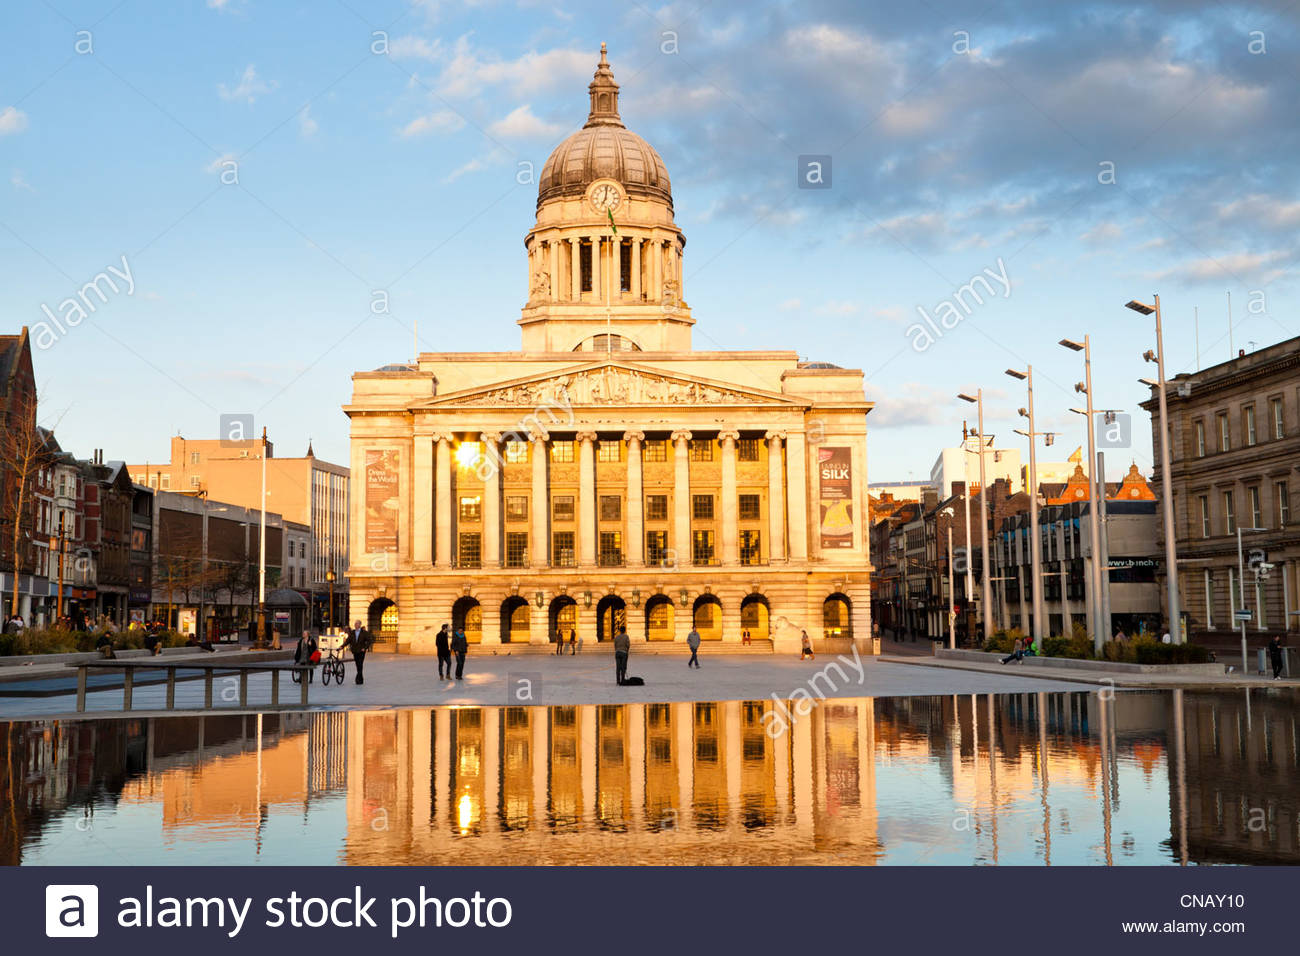 The Council House seen from across The Old Market Square, Nottingham, England, UK. - Stock Image